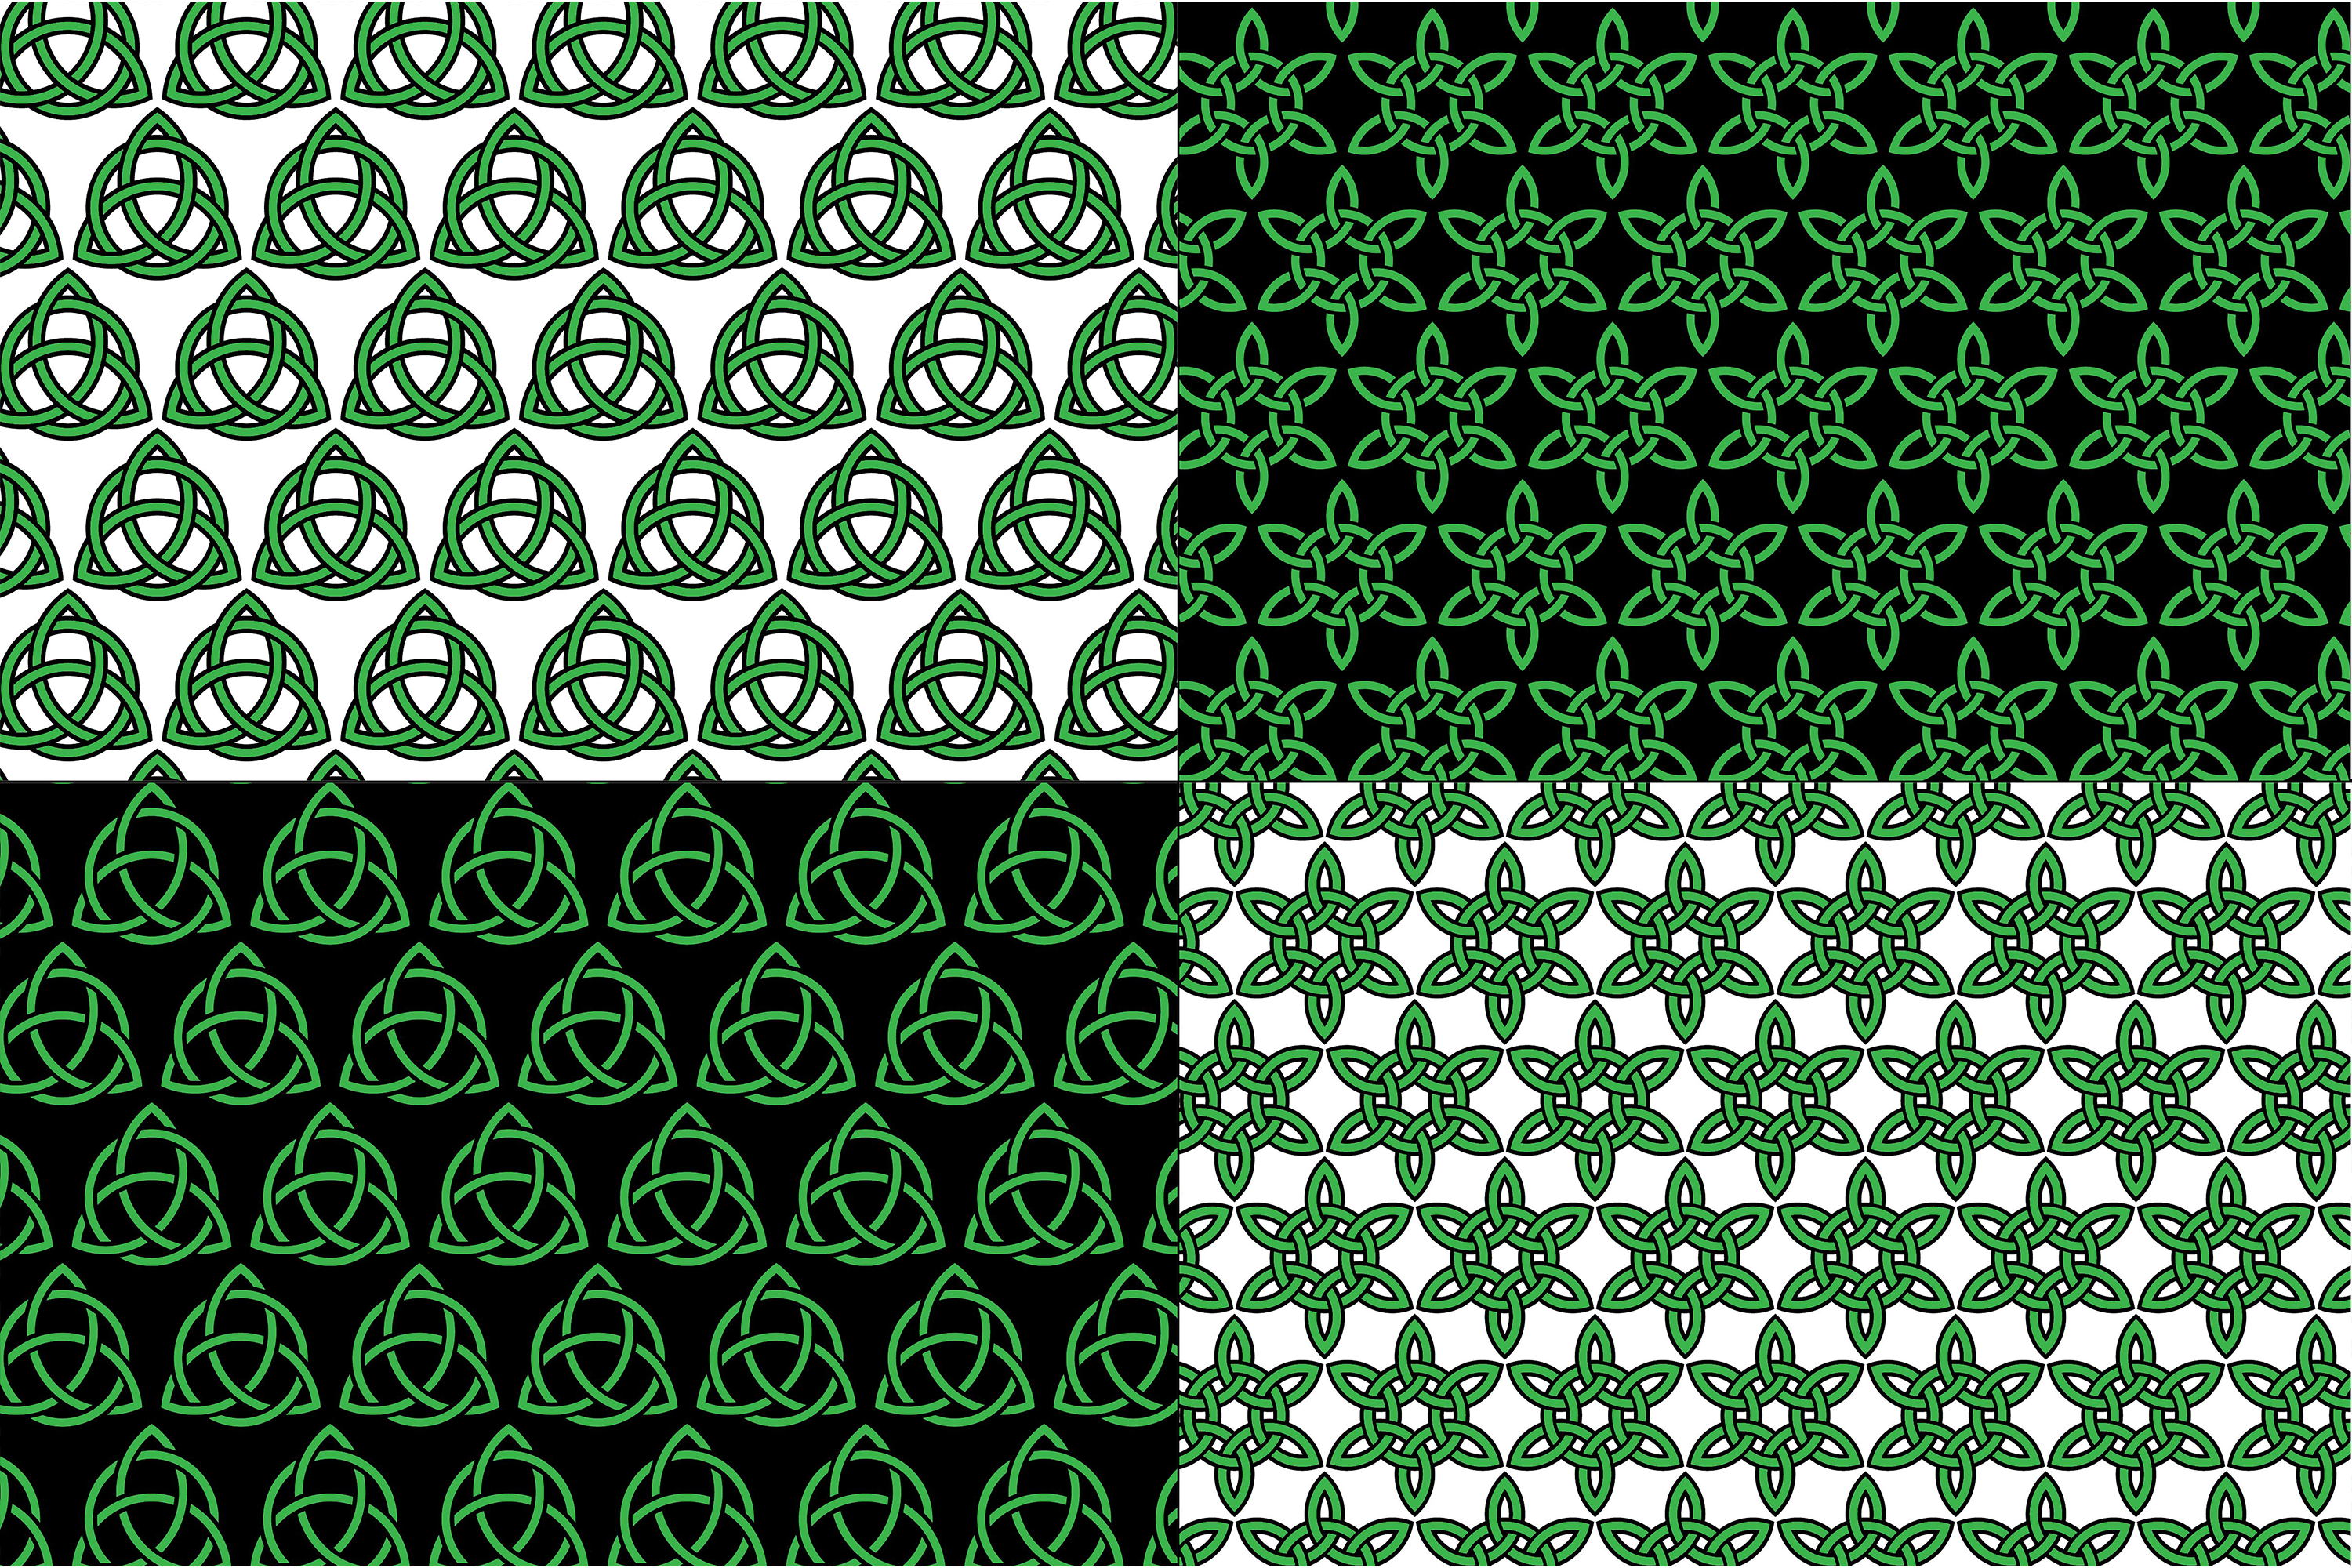 Celtic Knot Patterns example image 4